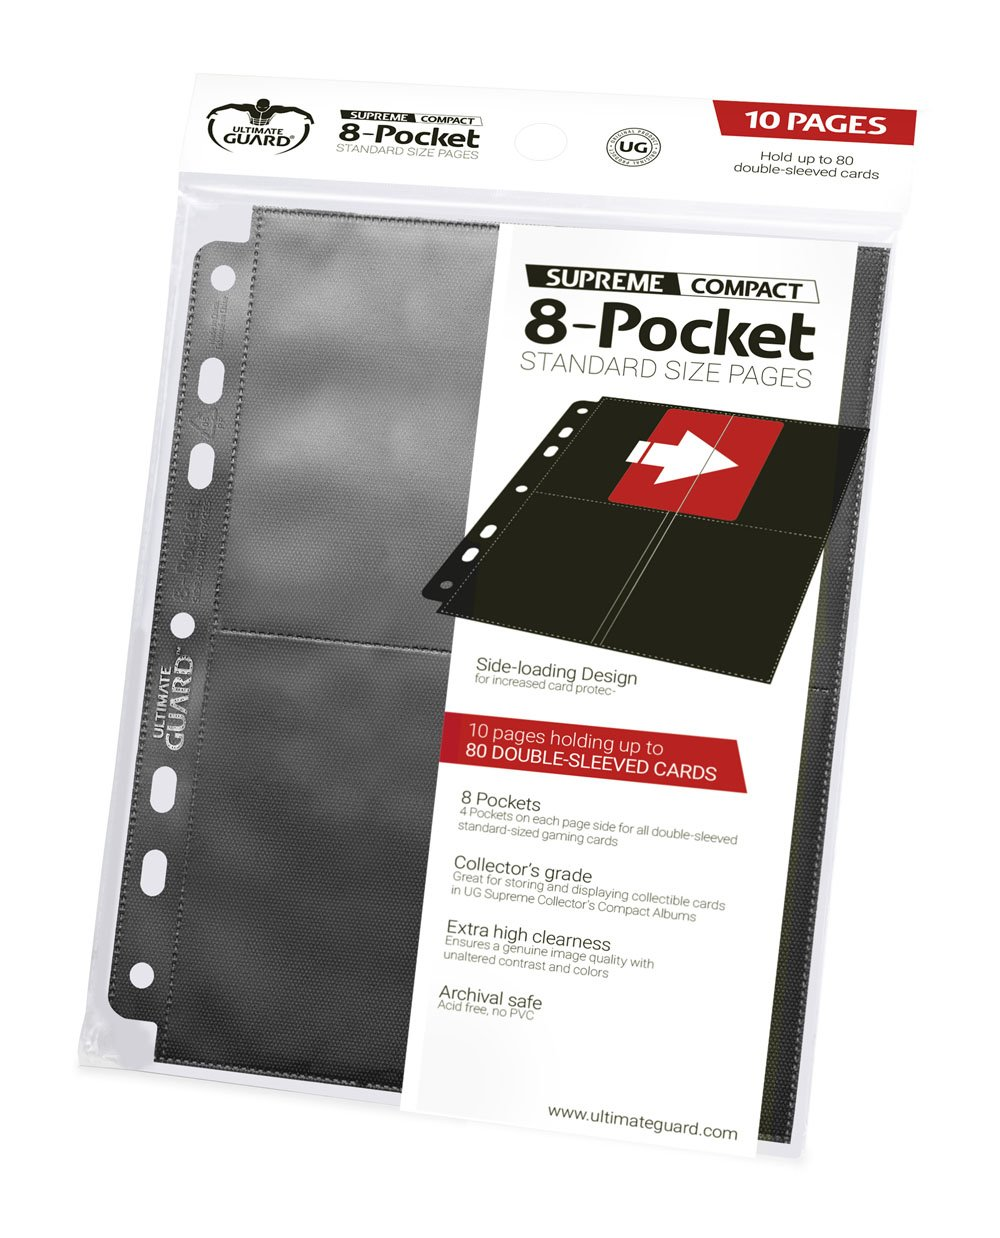 Ultimate Guard 8-Pocket Compact Pages Side-Loading Black (10)